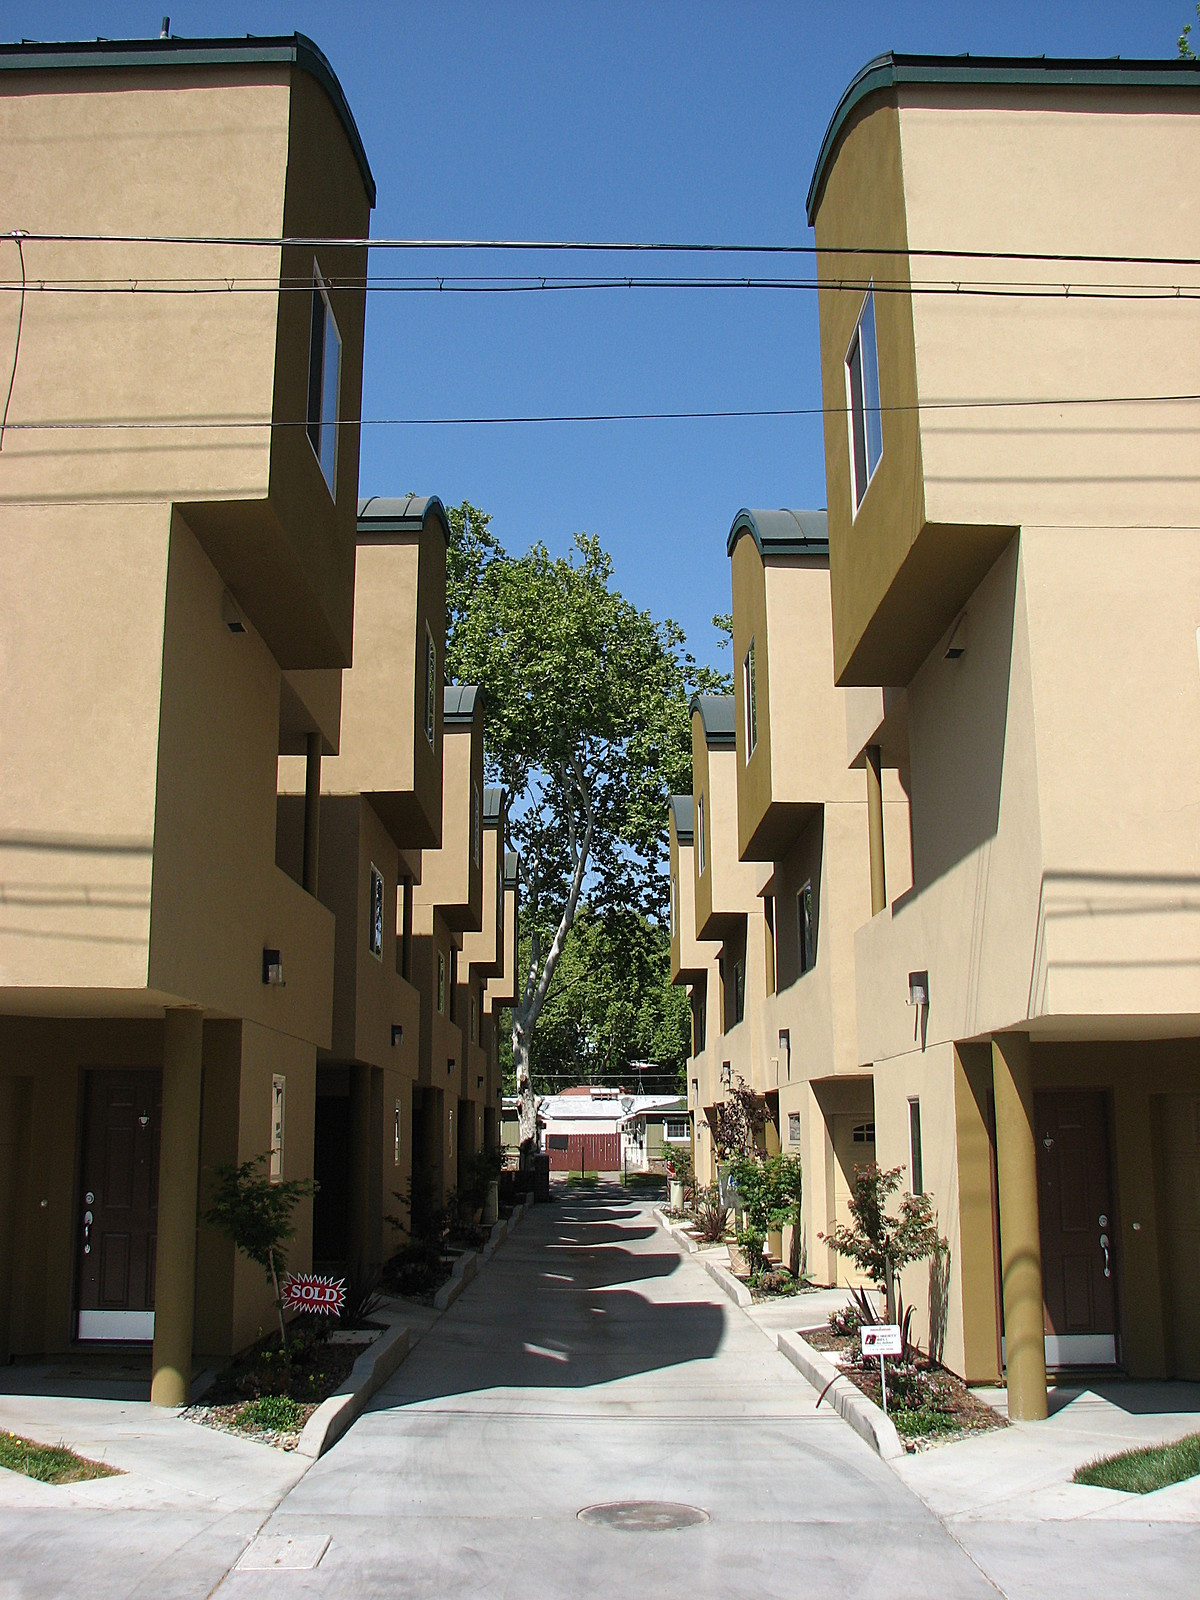 Southside Urban Villas; central alley driveway